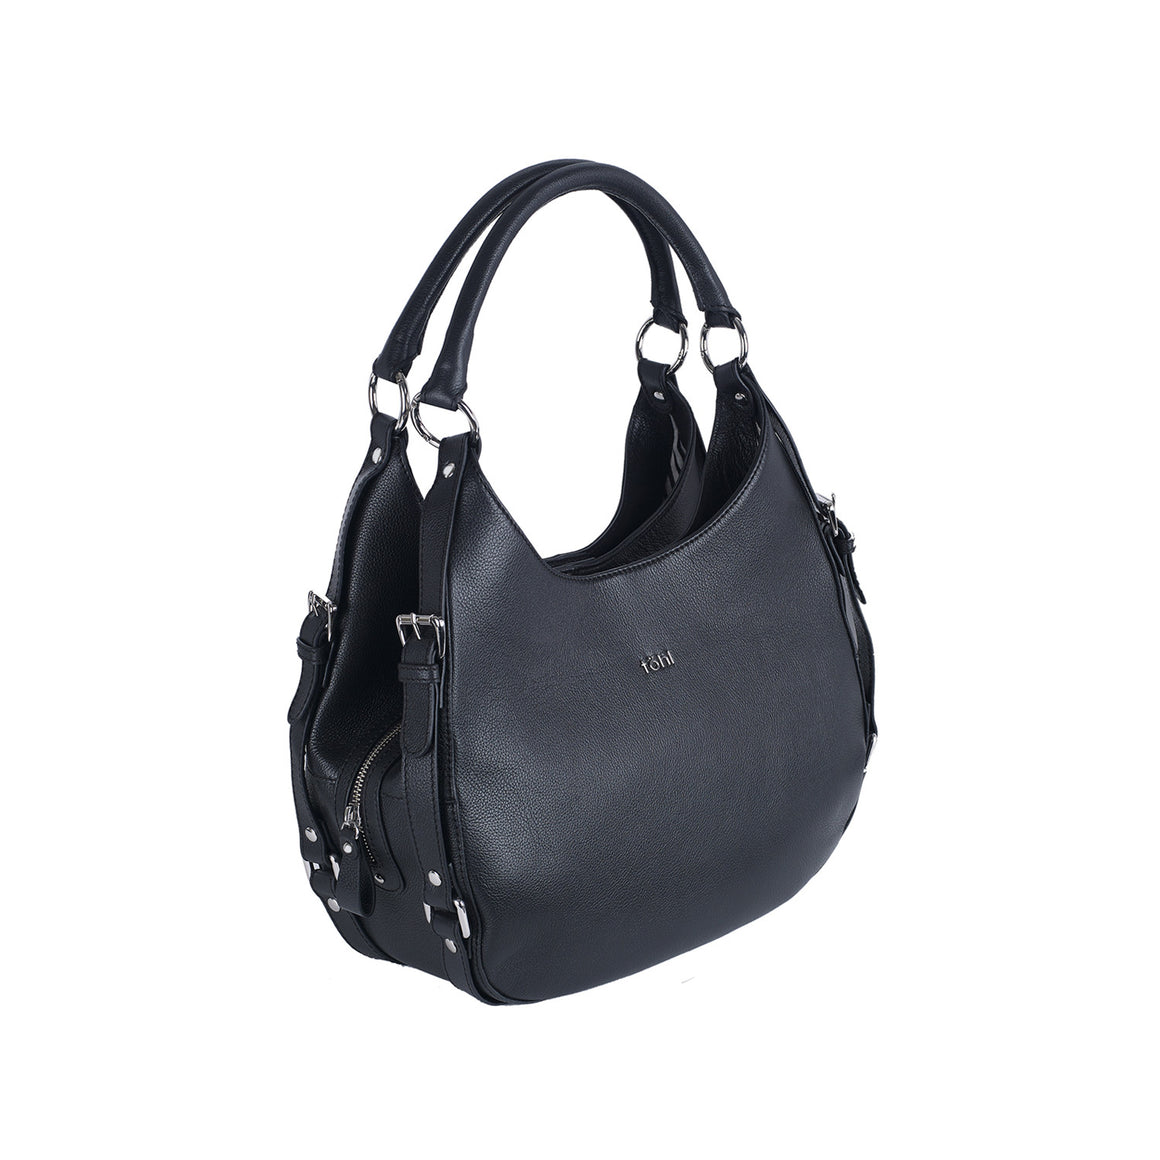 SB 0016 - TOHL KAIA WOMEN'S SHOULDER BAG - CHARCOAL BLACK